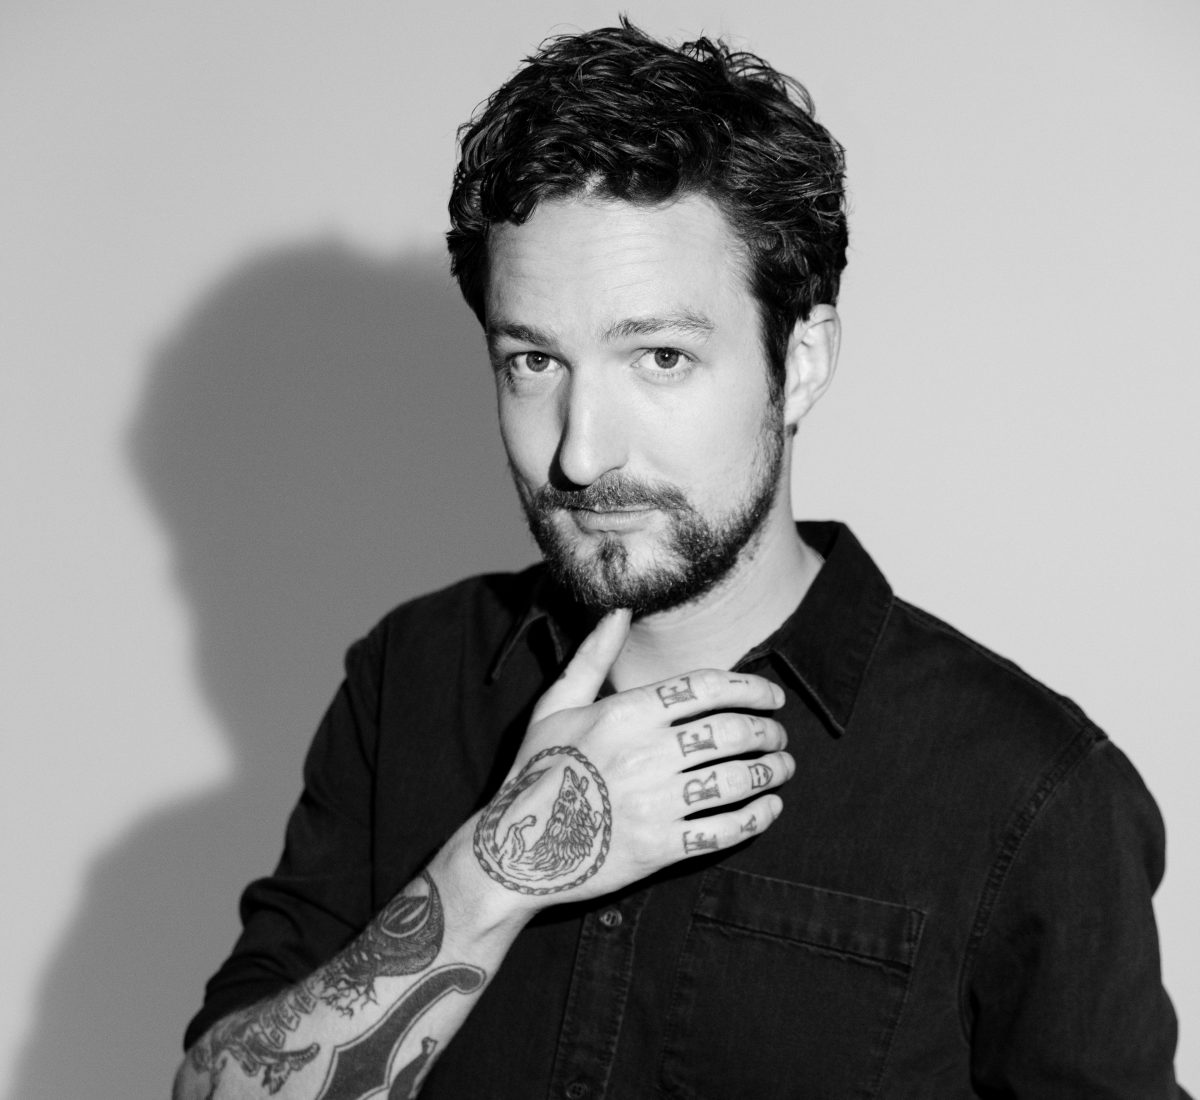 New Release: Frank Turner - Songbook / There She Is